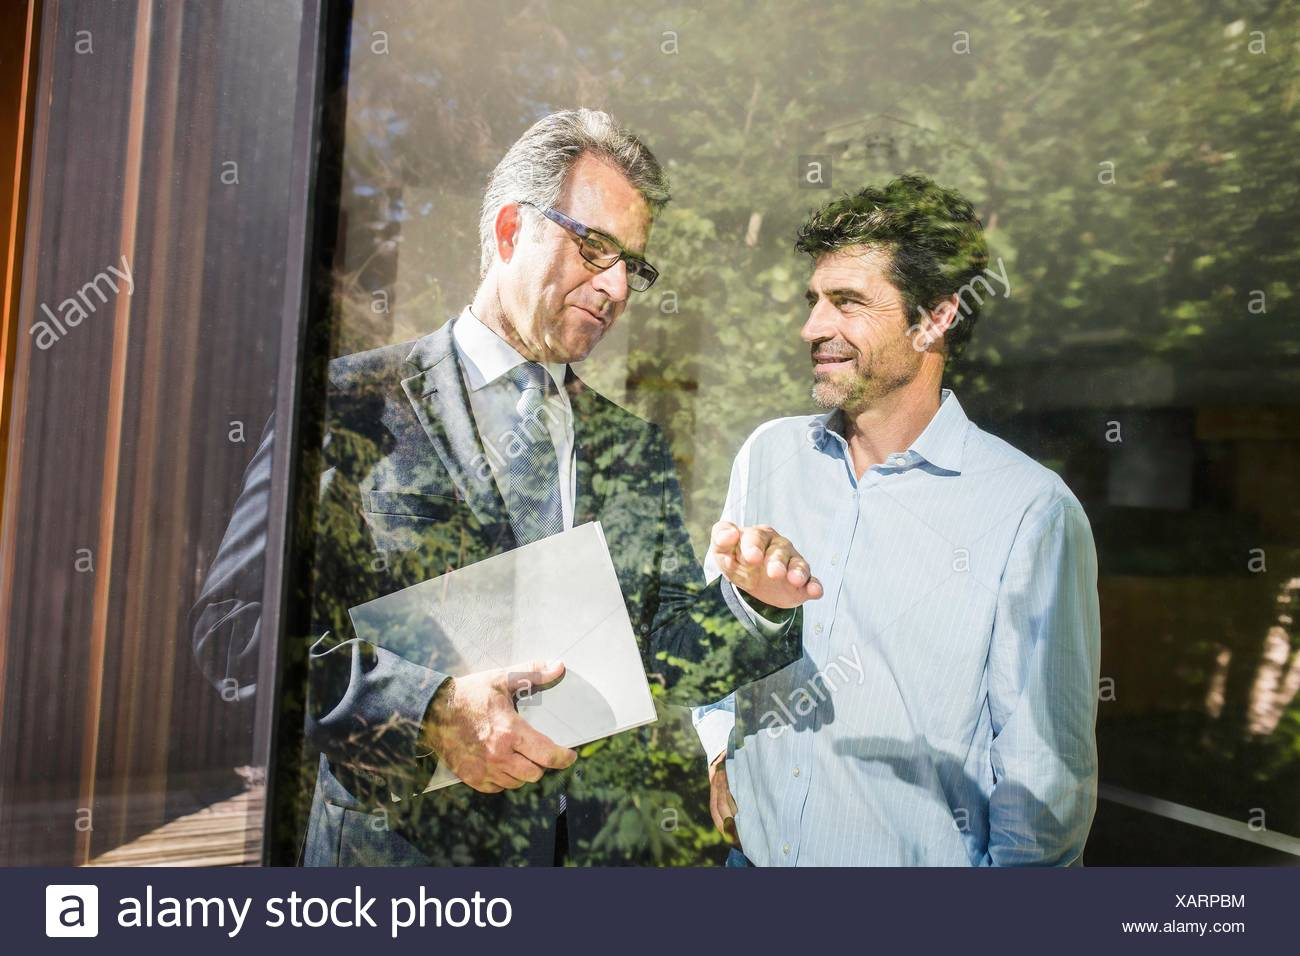 Estate agent showing mature man around new house - Stock Image